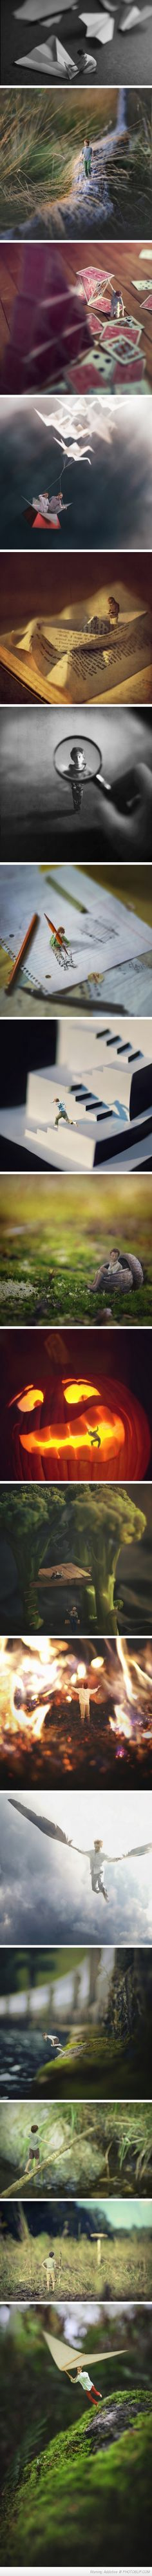 14 Year Old Photographers Surreal, Miniaturized Self Portraits